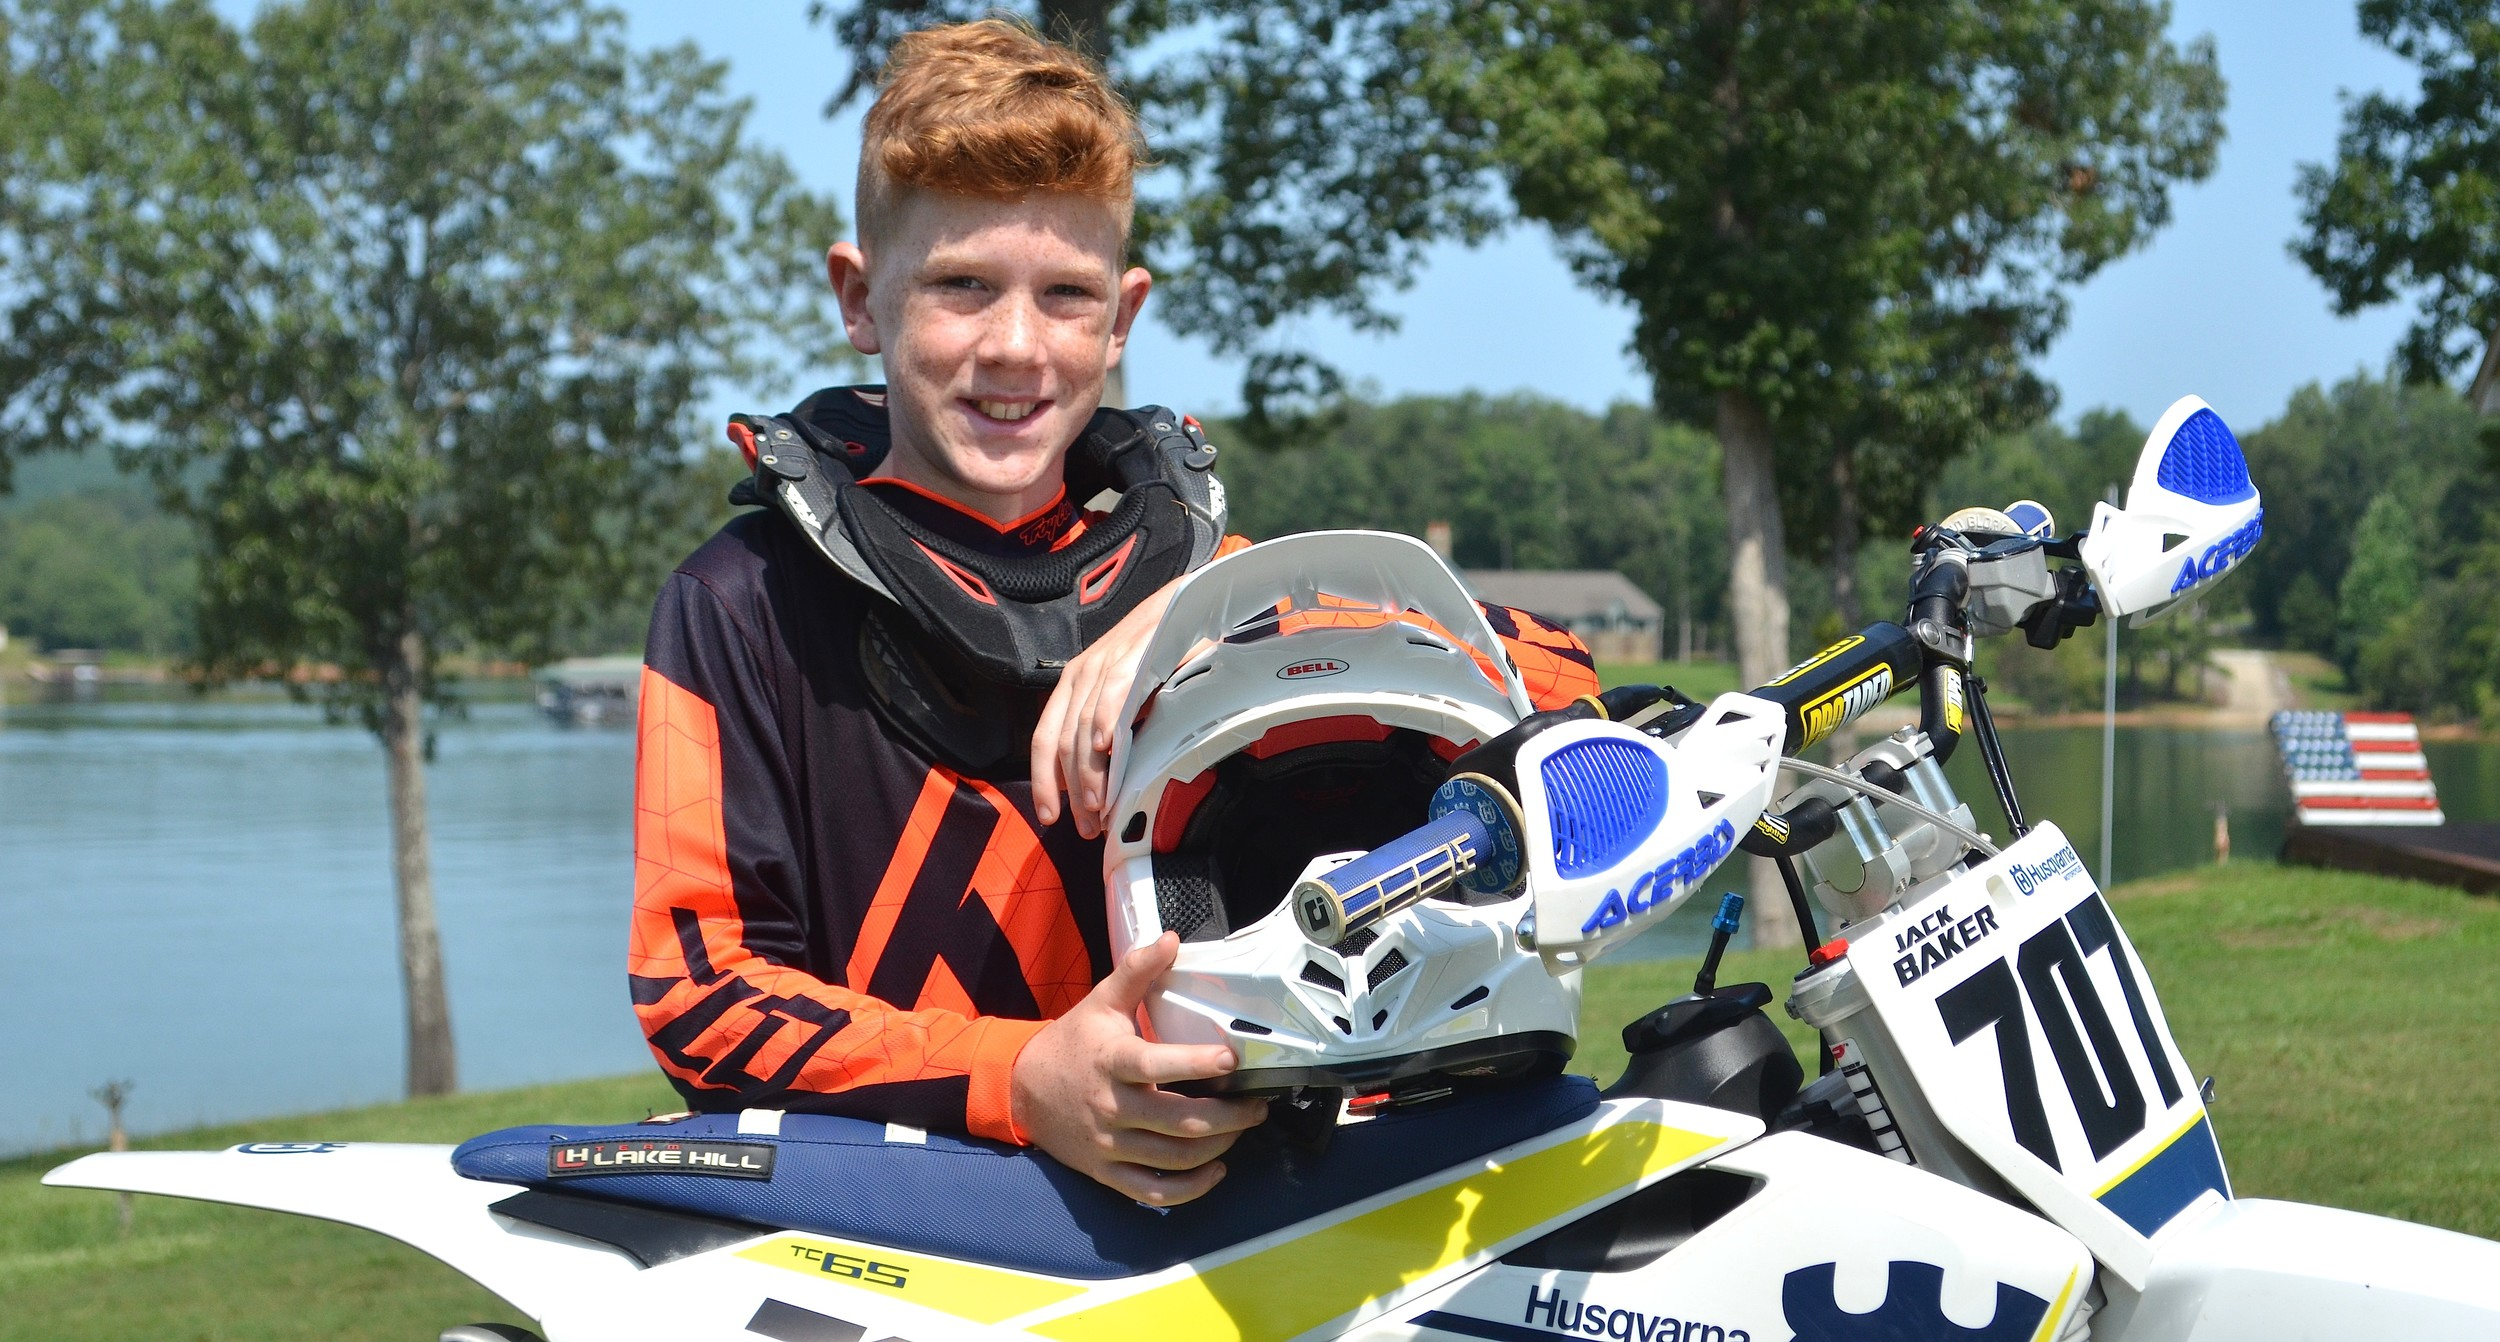 Jack Baker raced his way through the area and regional events to make the field in the Rocky Mountain ATV/MC National Motocross Championship at Loretta Lynn's Ranch in Hurricane Mills, Tenn., this week. Baker will be racing in the ages 7-11, 65cc modified division.